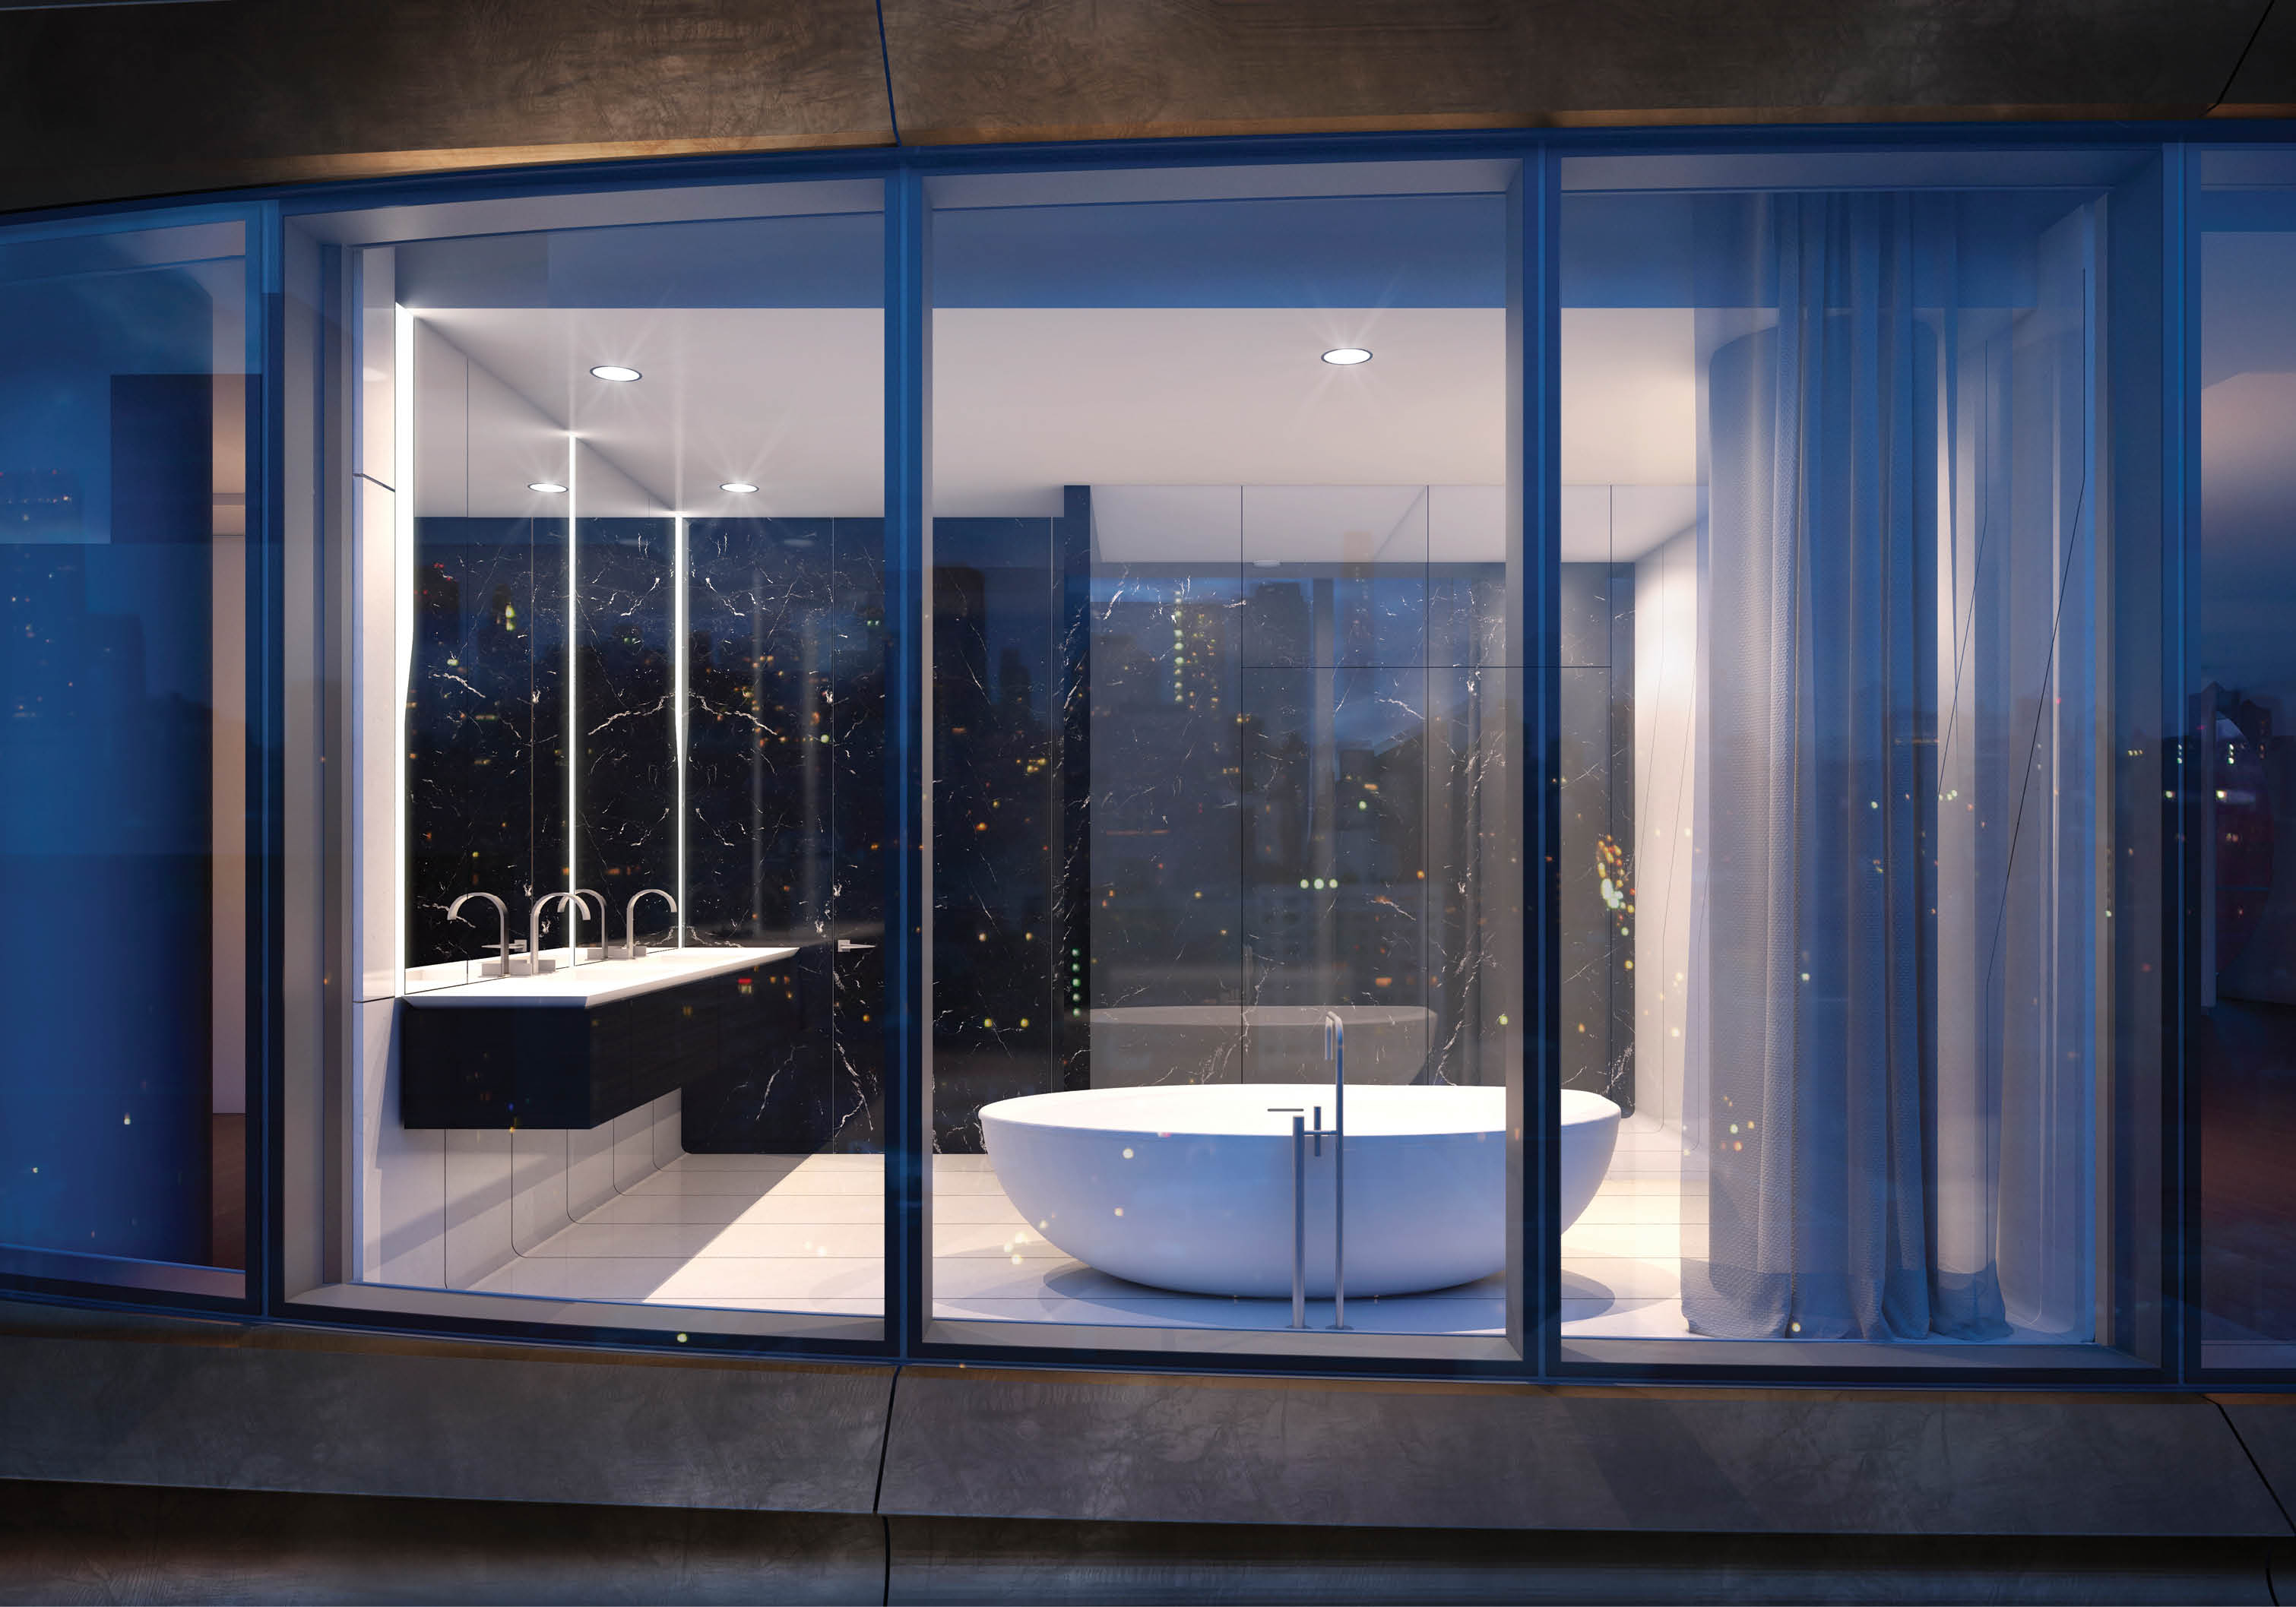 http://content.related.com/Chelsea Modern Bath